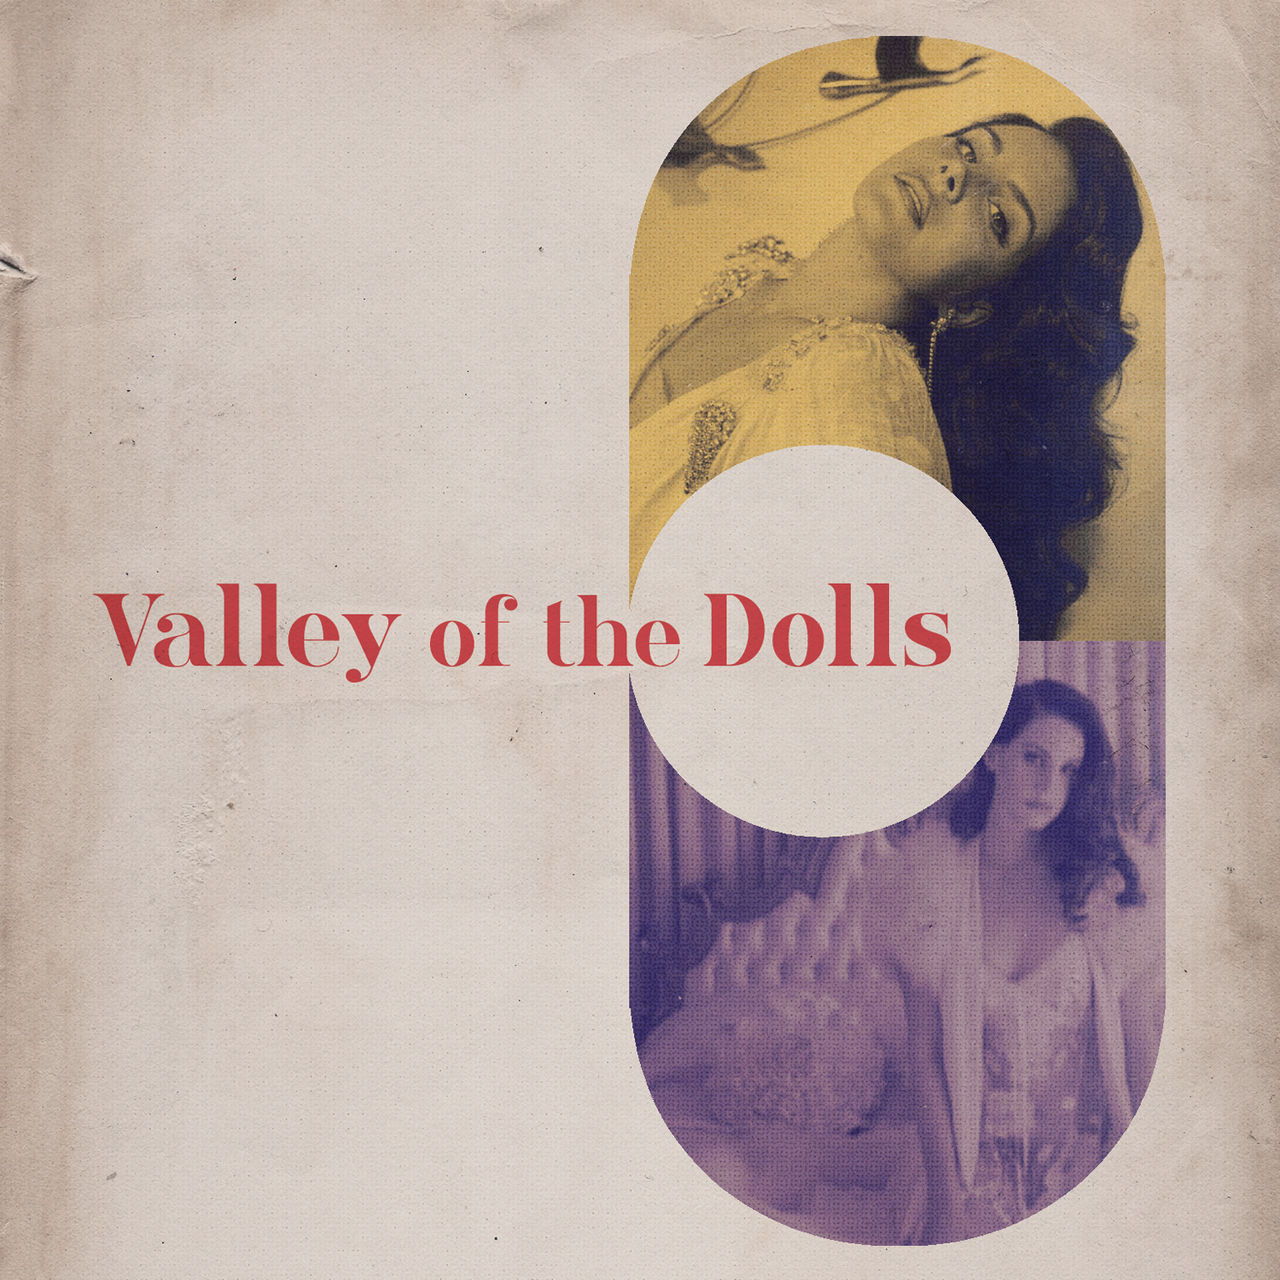 lana_del_rey_valley_of_the_dolls_by_kall